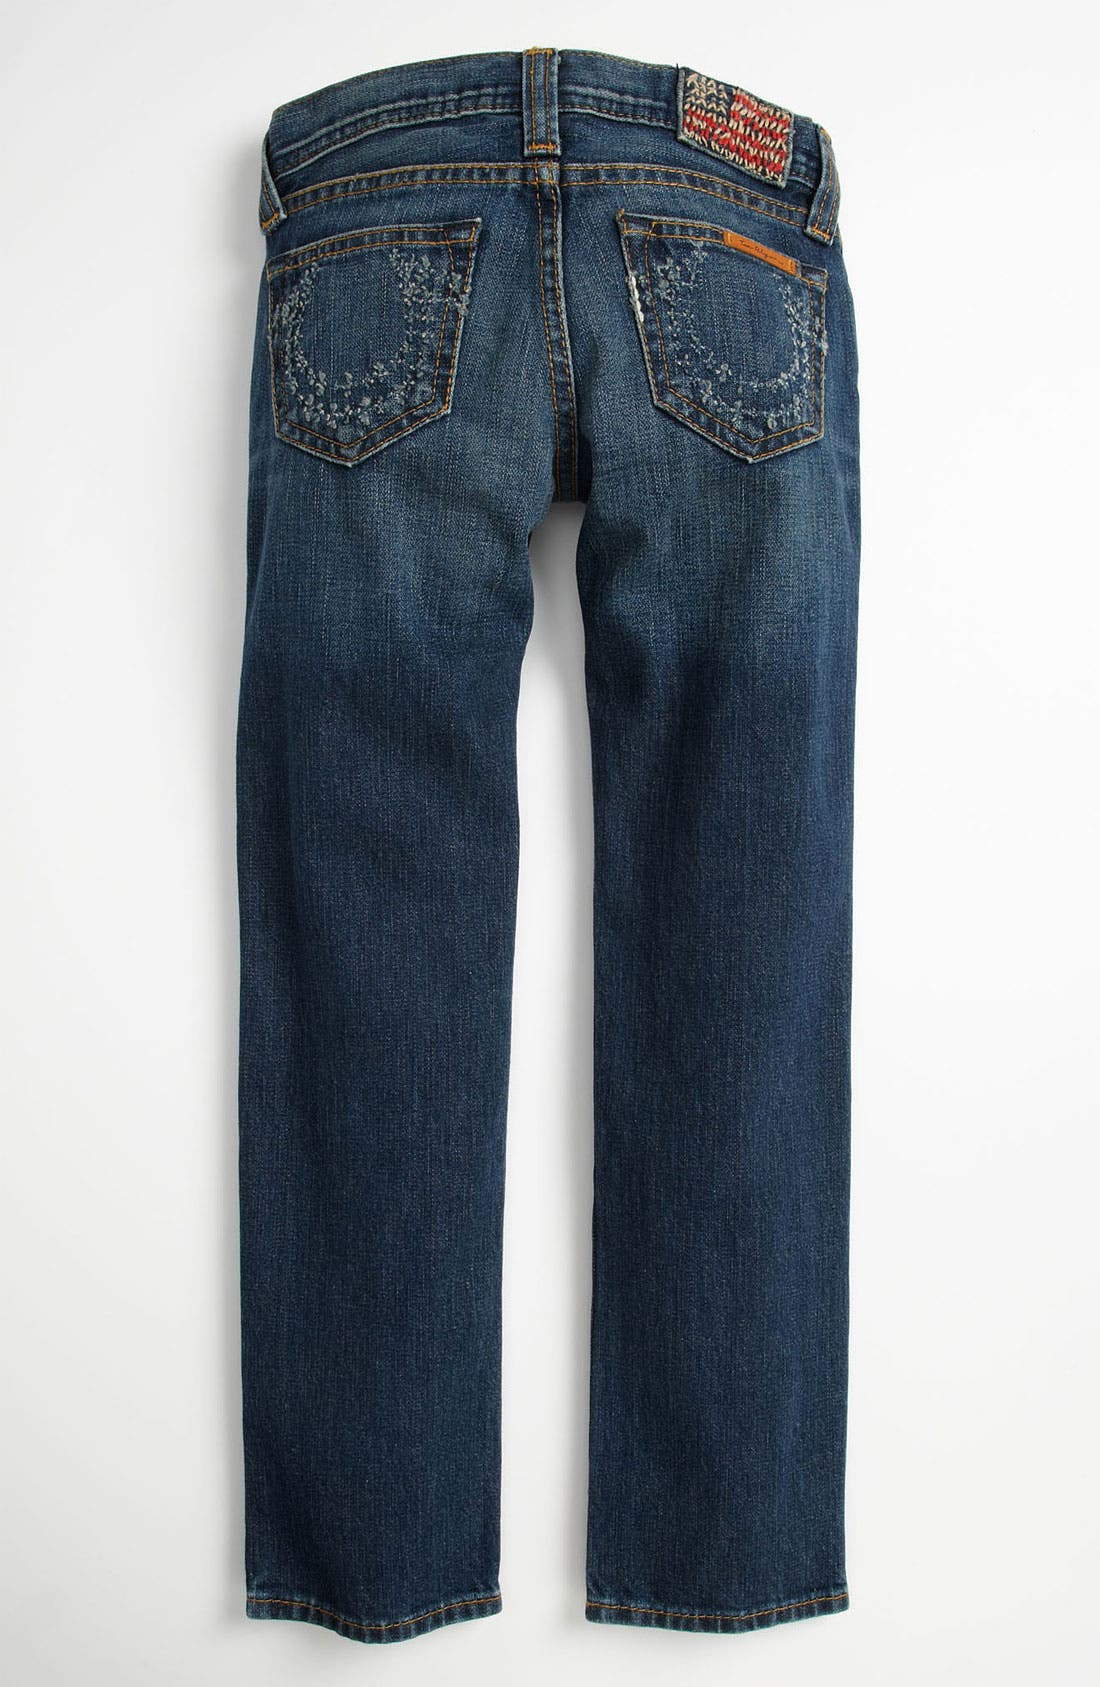 Main Image - True Religion Brand Jeans 'Rocco Skinny Fit' Jeans (Little Boys)